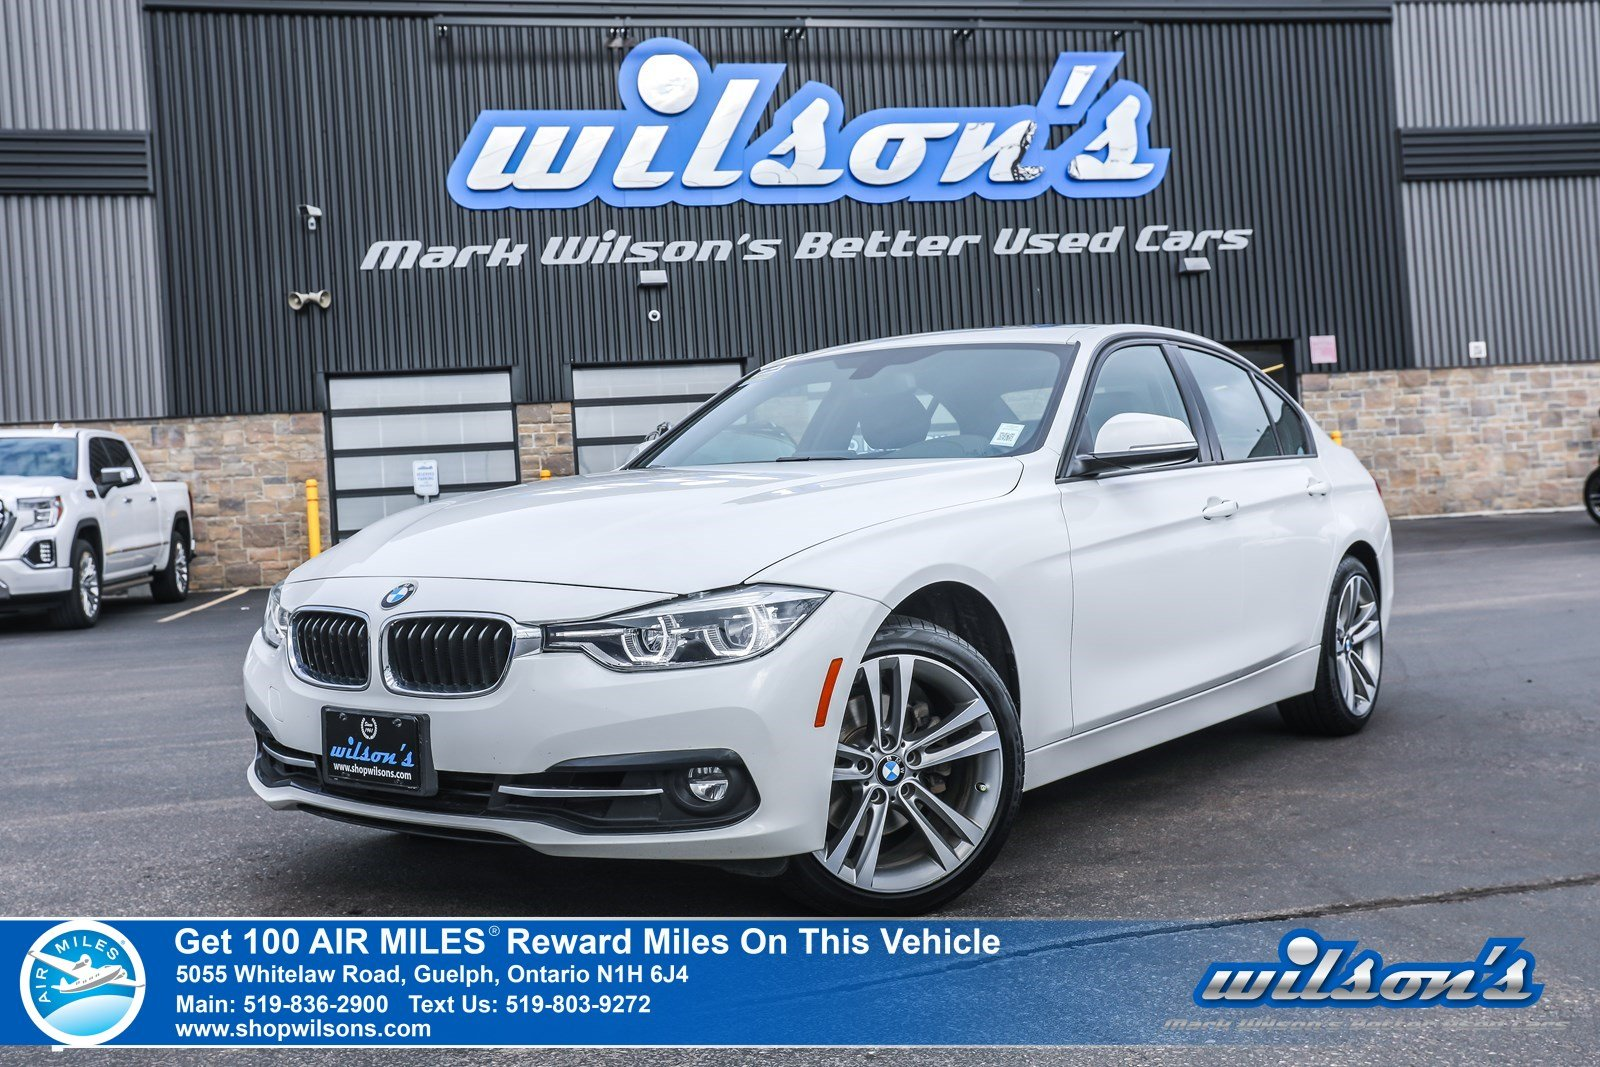 Certified Pre-Owned 2018 BMW 3 Series 330i xDrive Sportline AWD Used – Navigation, Sunroof, Rear Cam, Bluetooth, Cruise Control and more!